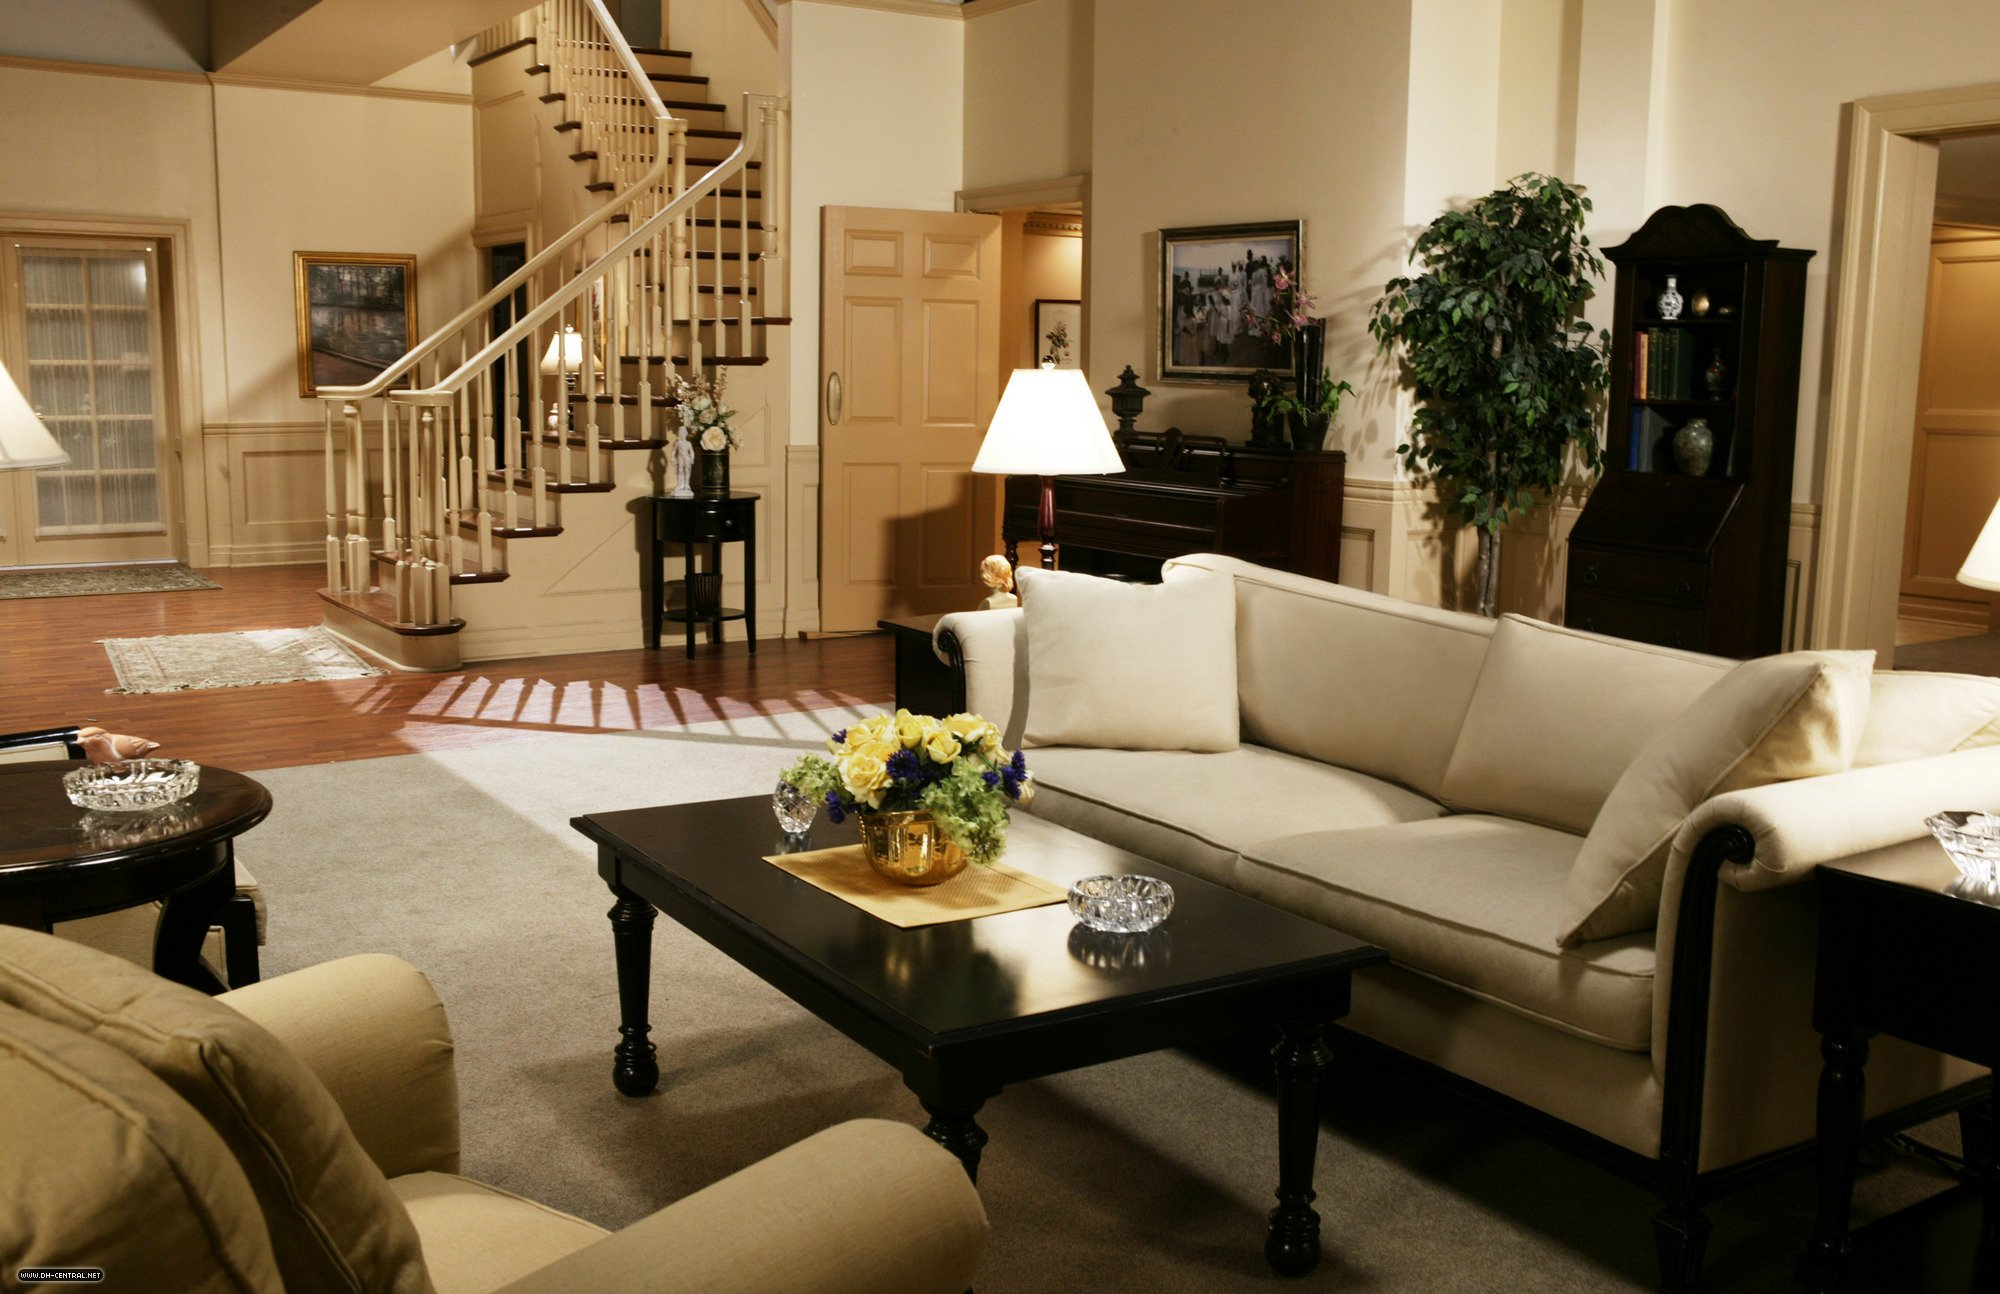 Family van de kamp 39 s residence on desperate housewives - Inside house ...